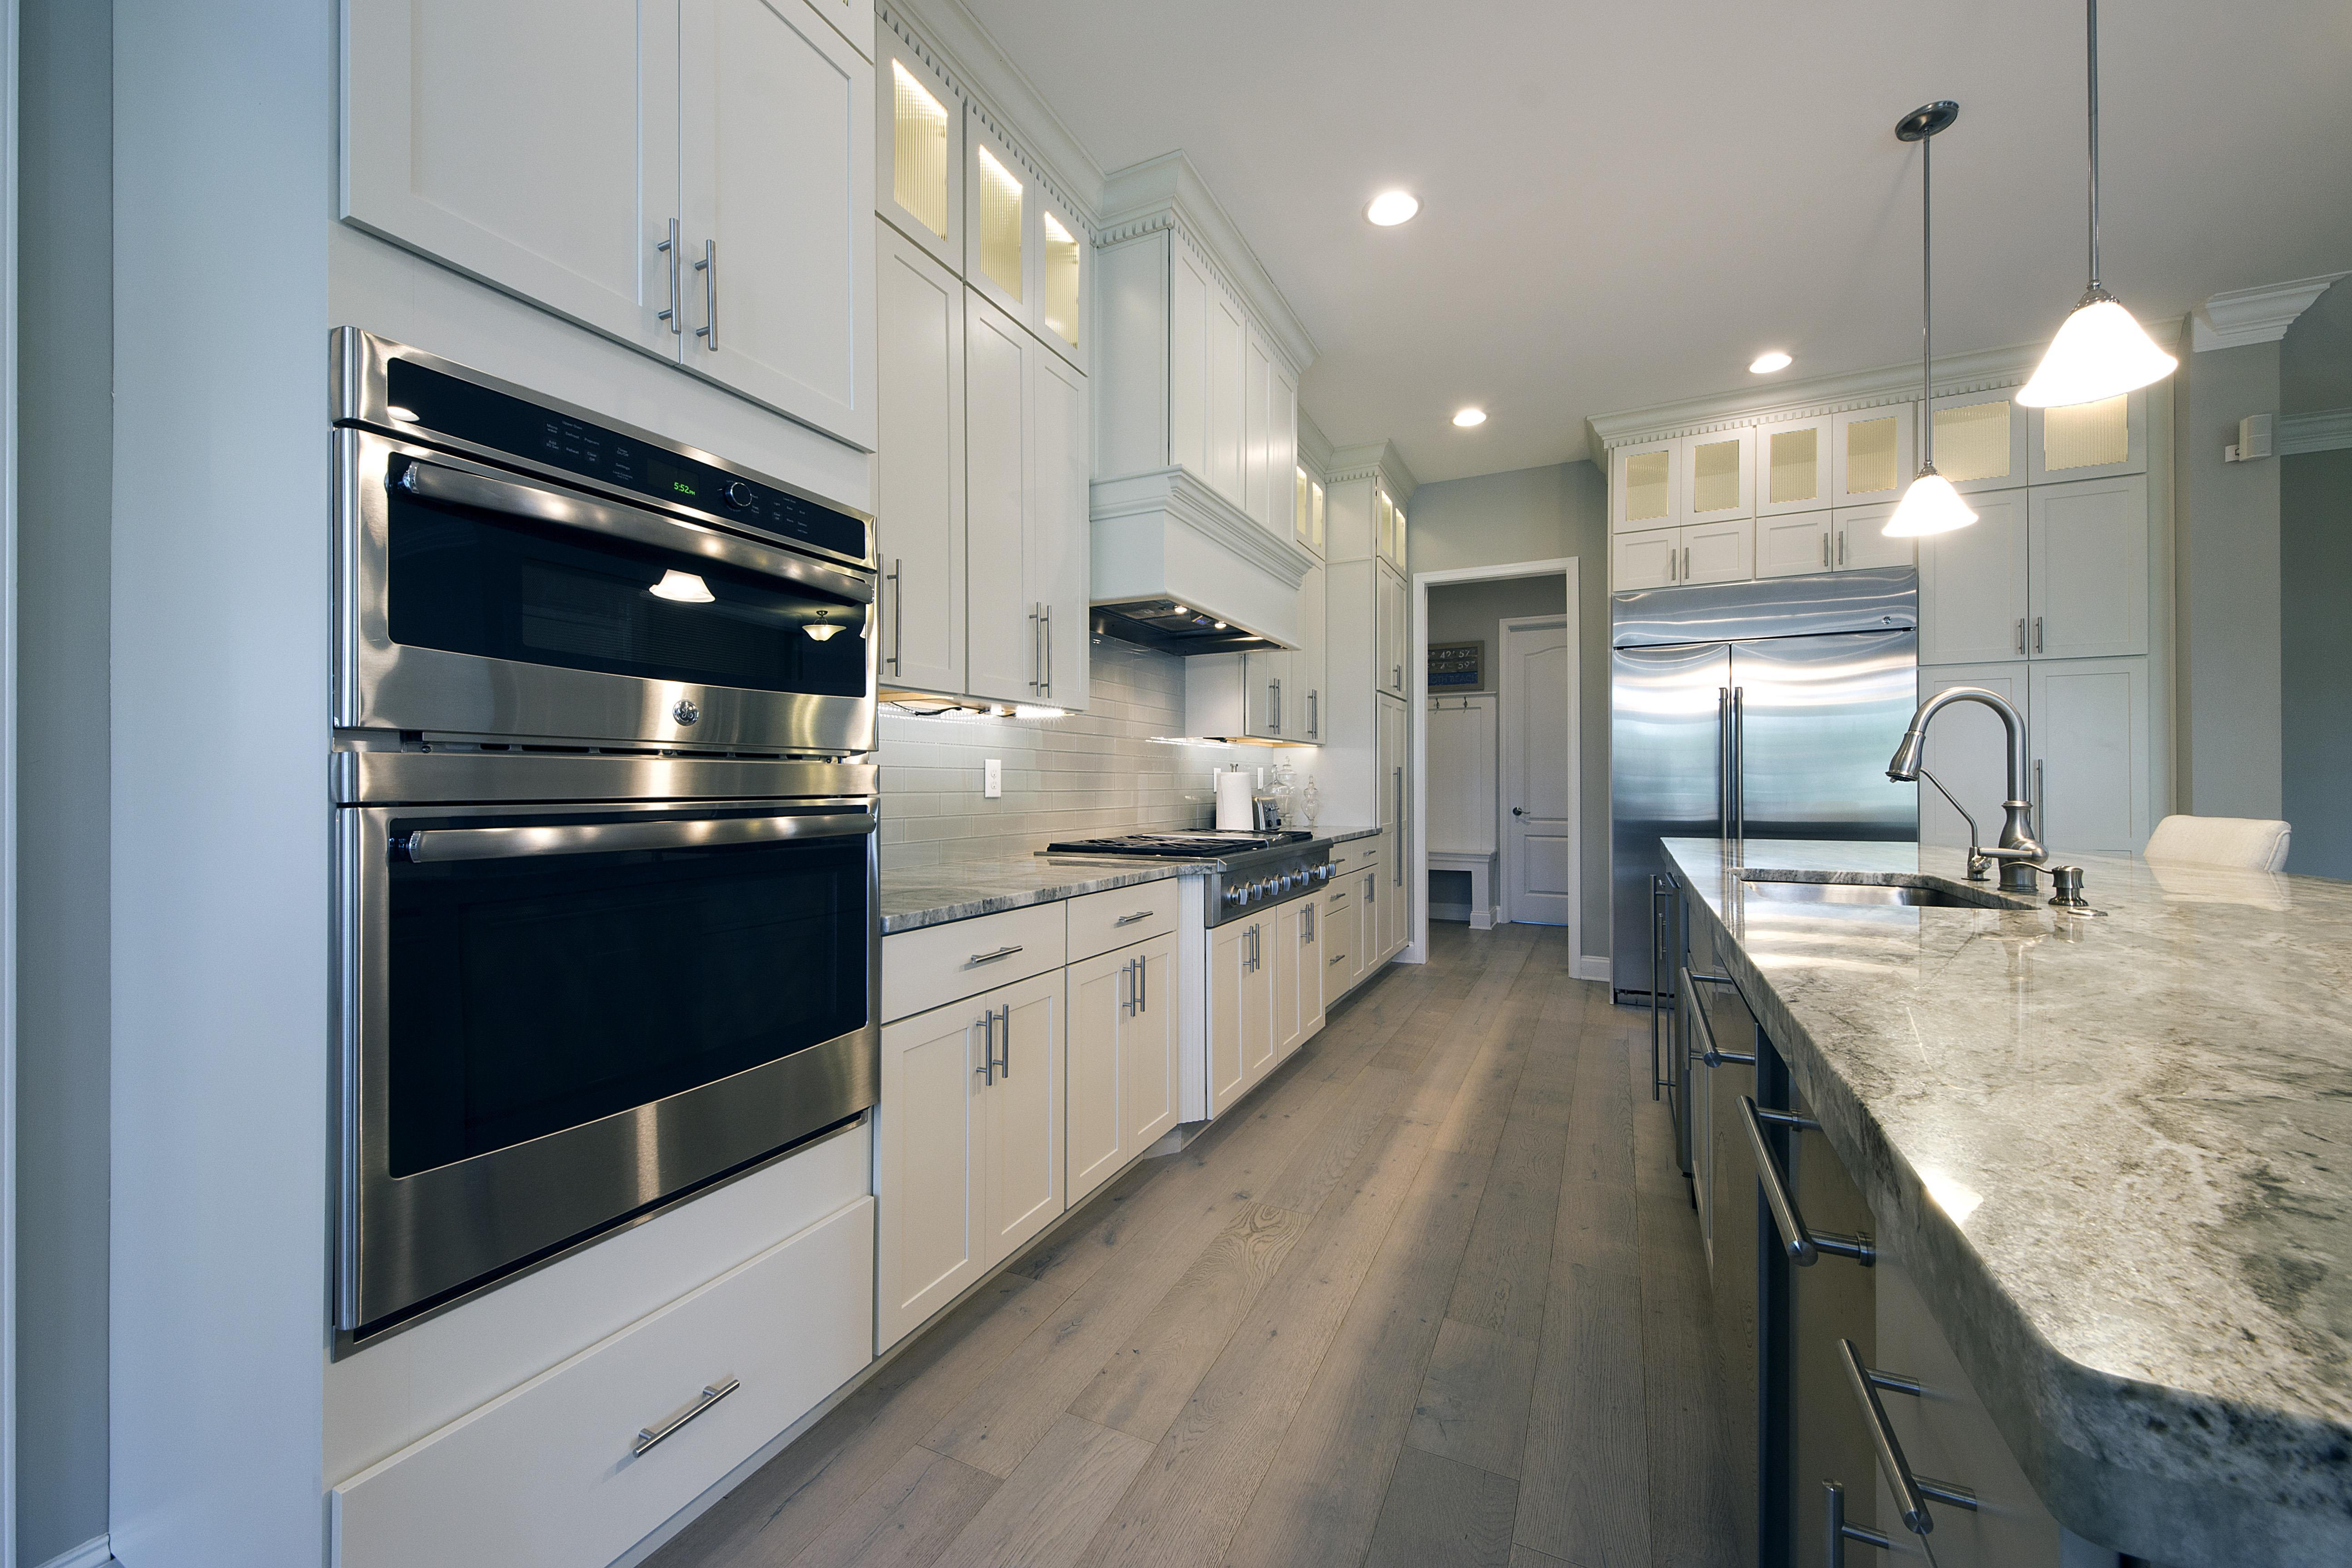 Kitchen featured in The Georgetown By Ashburn Homes in Dover, DE